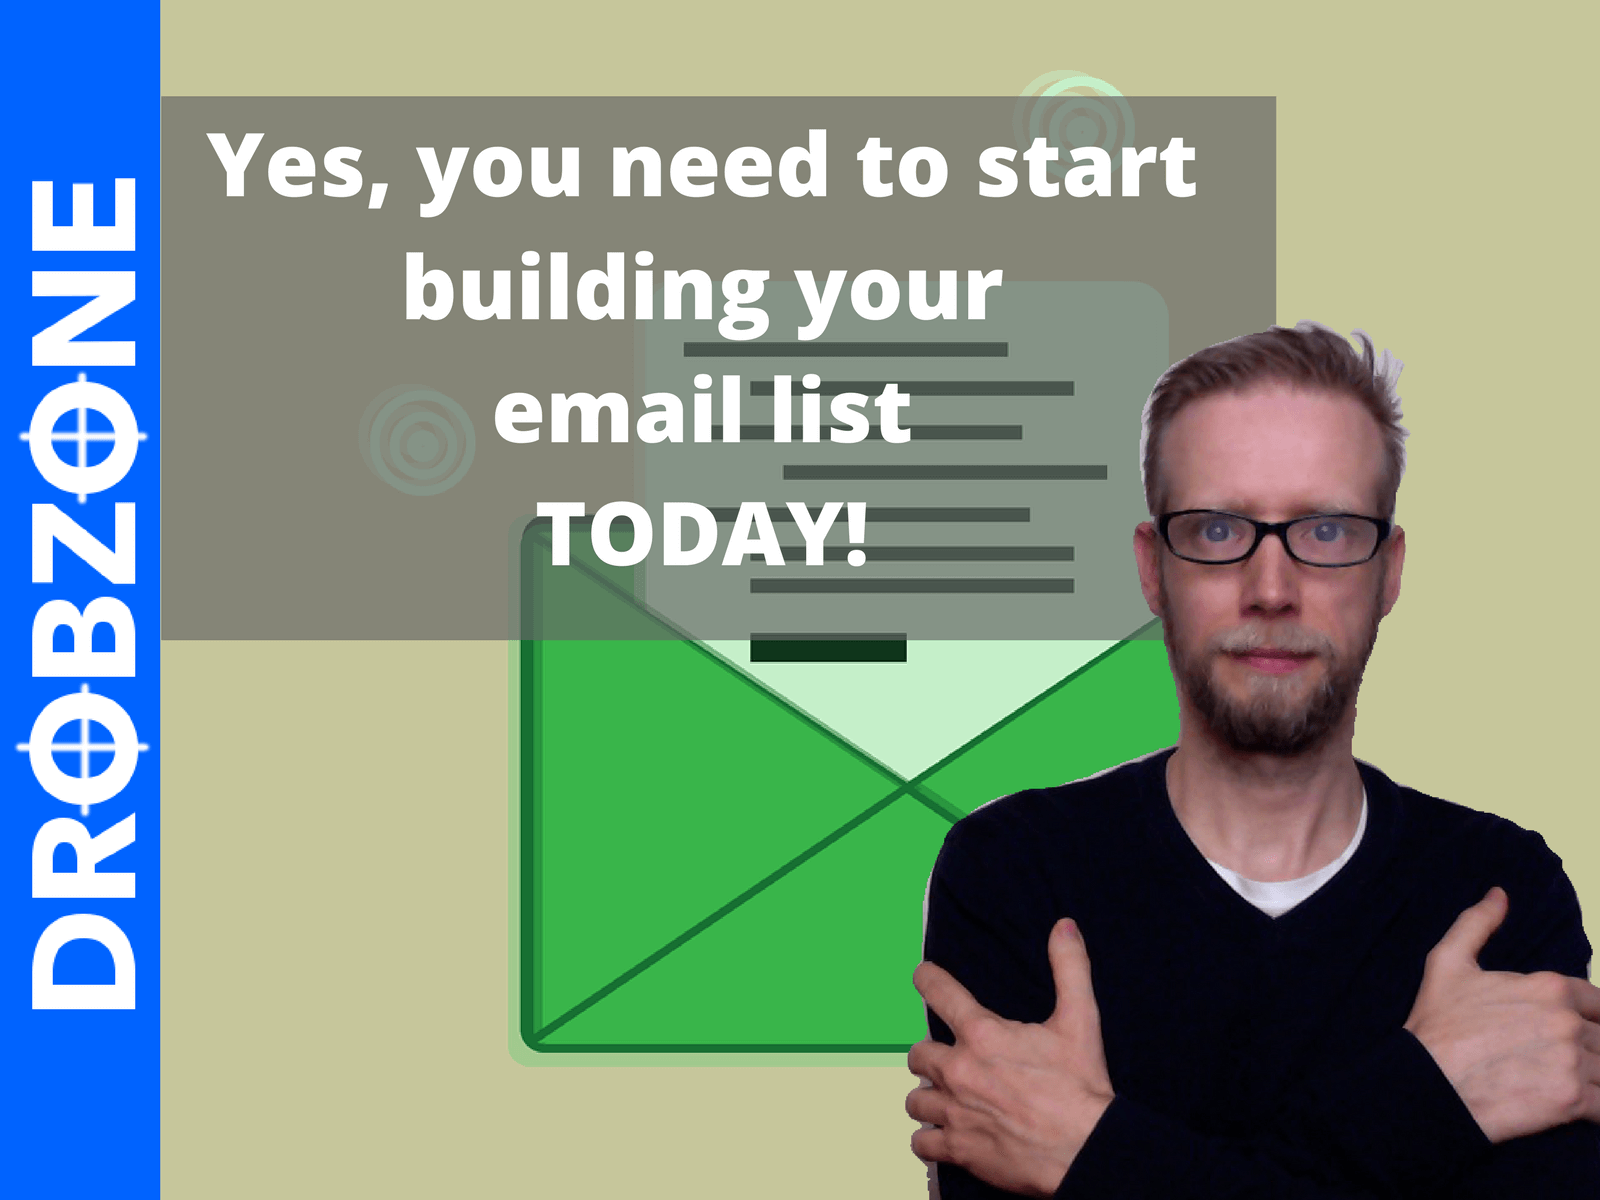 Have you started building your email list yet for I want to build a house where do i start